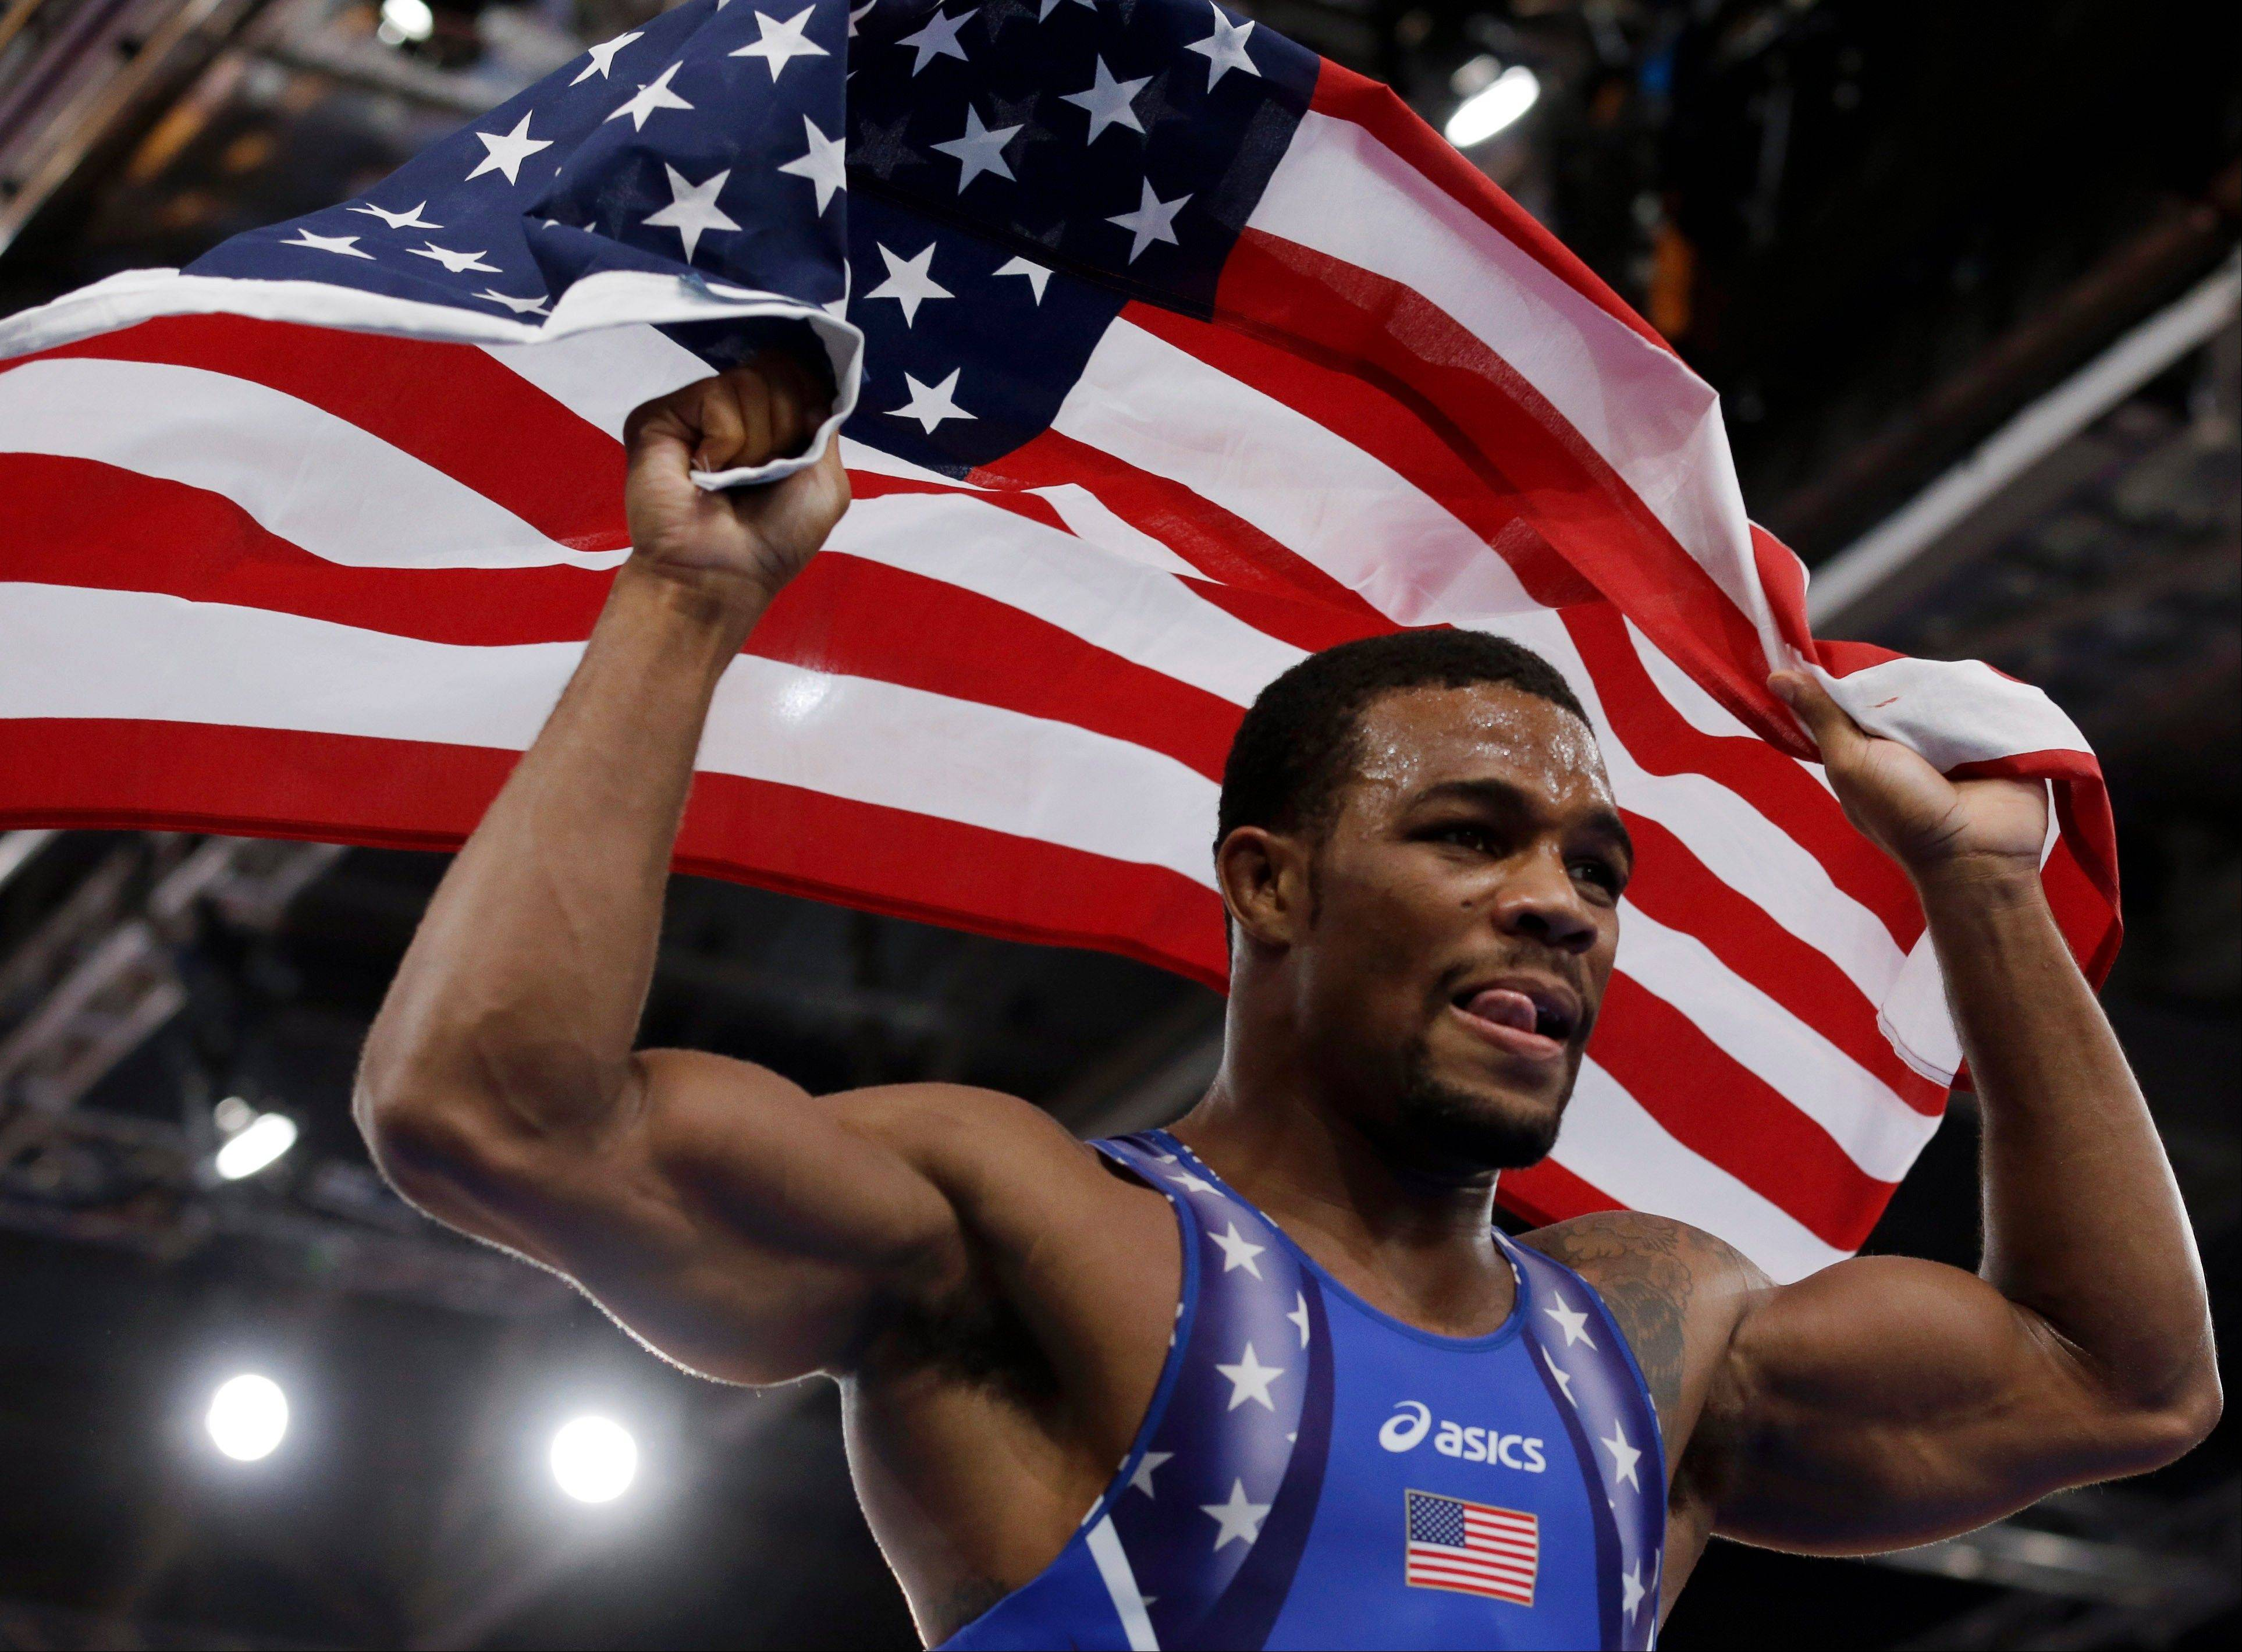 United States wrestler Jordan Burroughs celebrates Friday after beating Iran's Sadegh Saeed Goudarzi in the freestyle gold medal match at 74-kg.